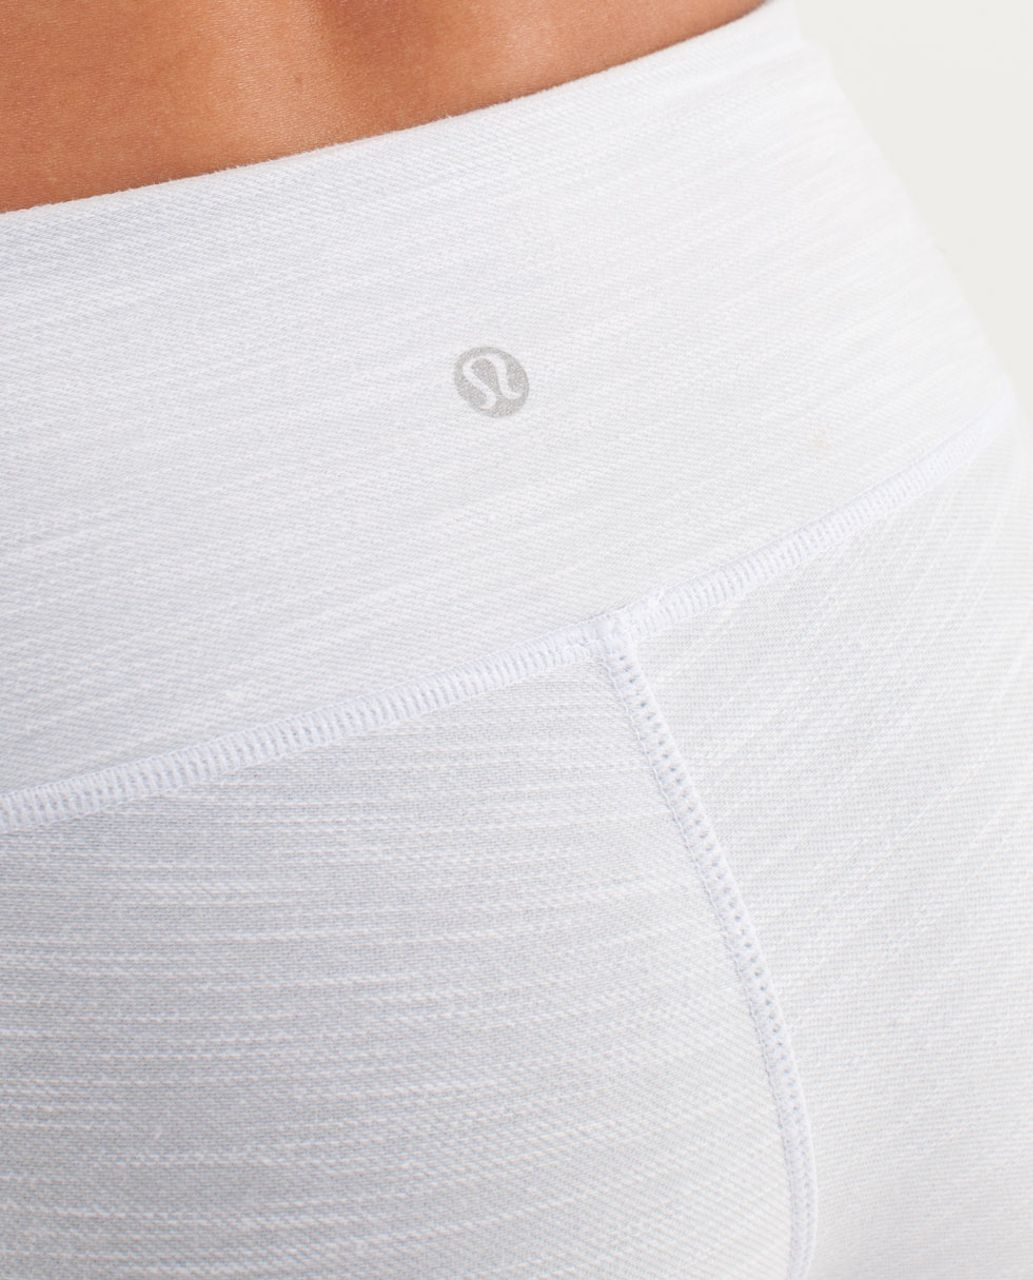 Lululemon Wunder Under Crop *Denim - White